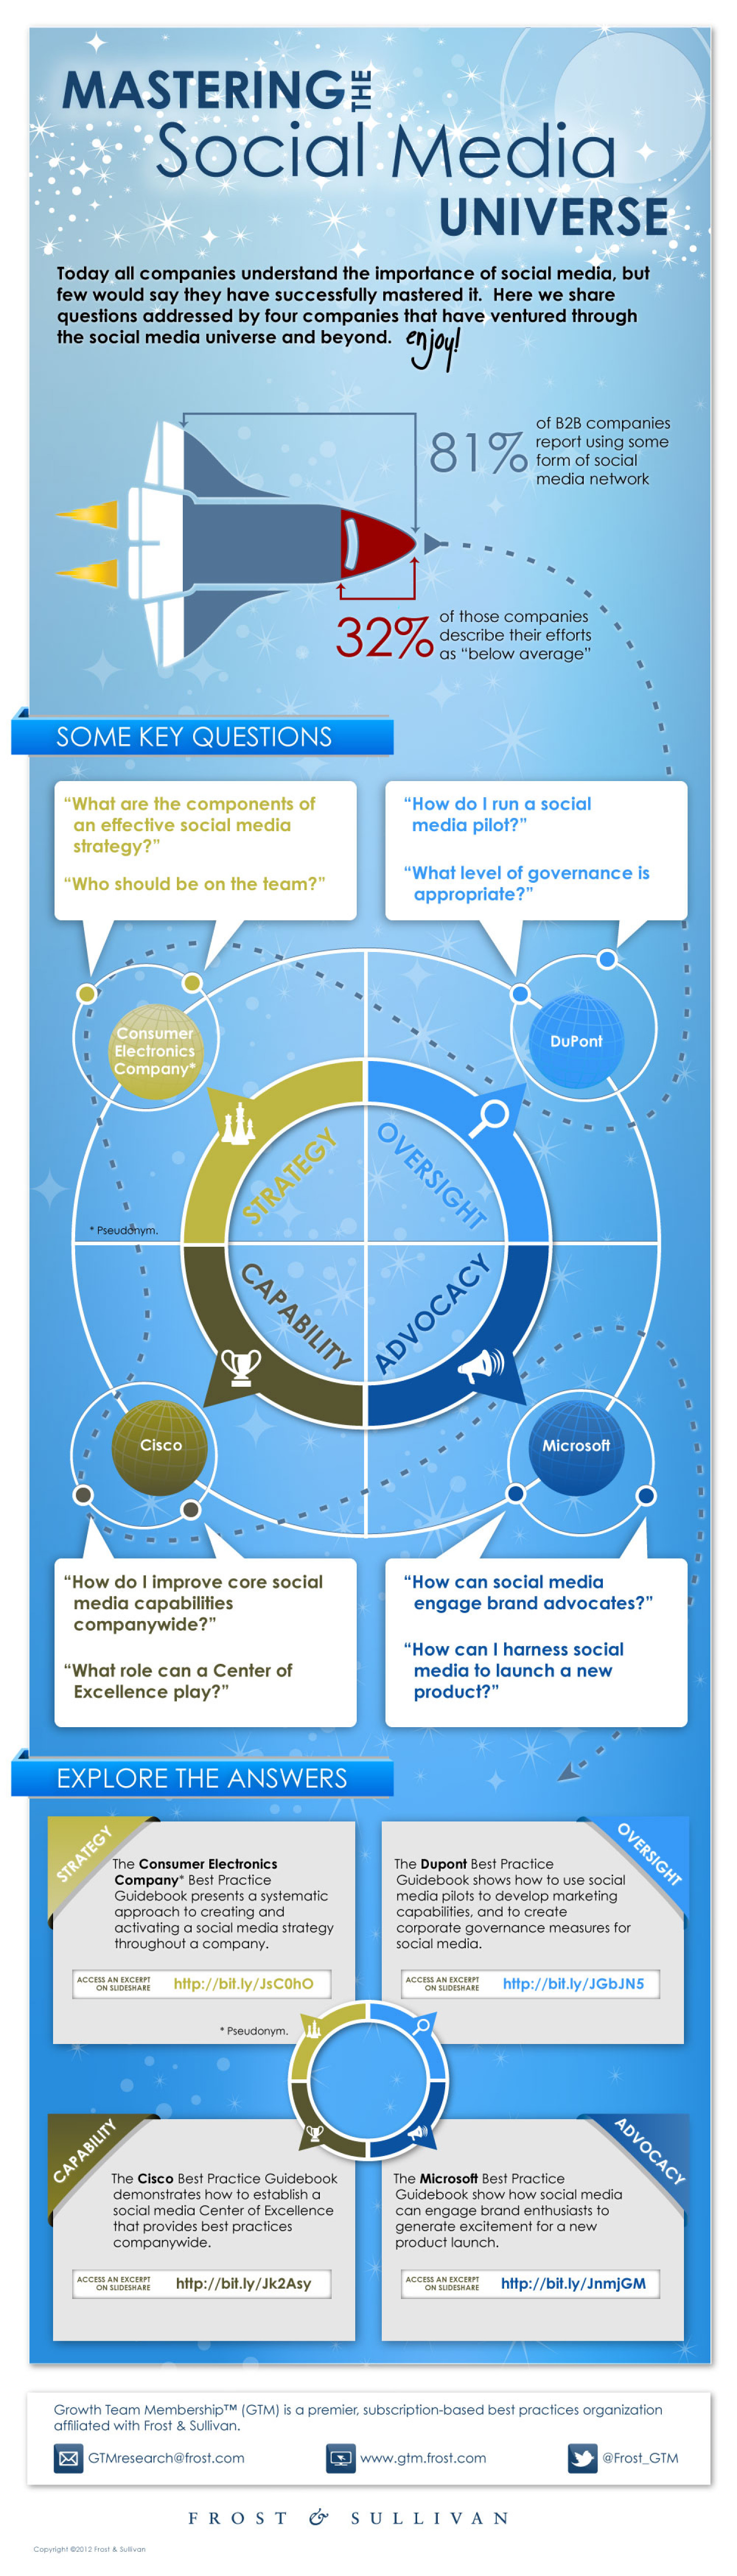 Mastering the Social Media Universe Infographic